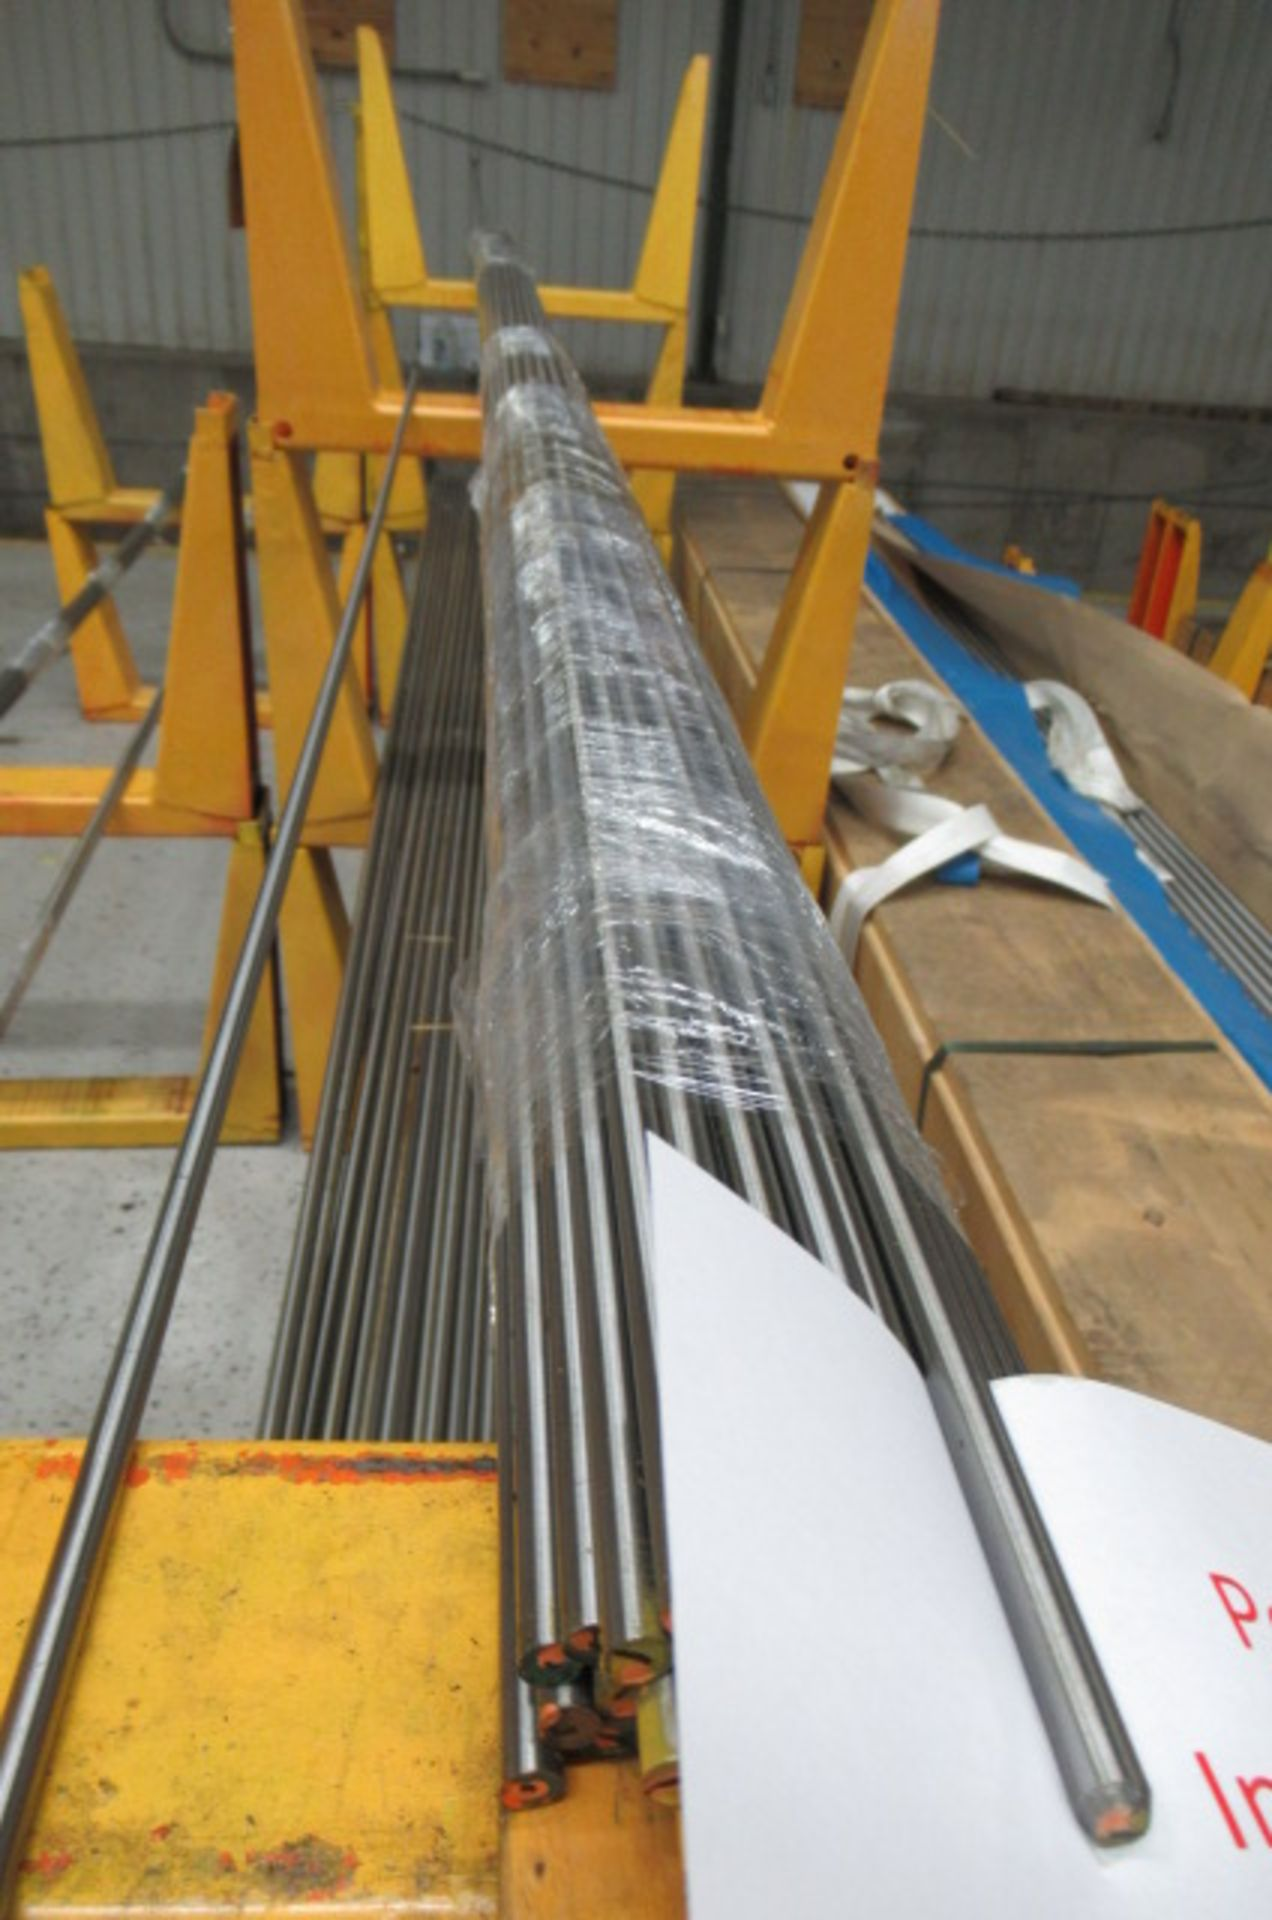 Lot steel round stock 52100 09.000mm per 1E0112A qty 45 - Image 3 of 3